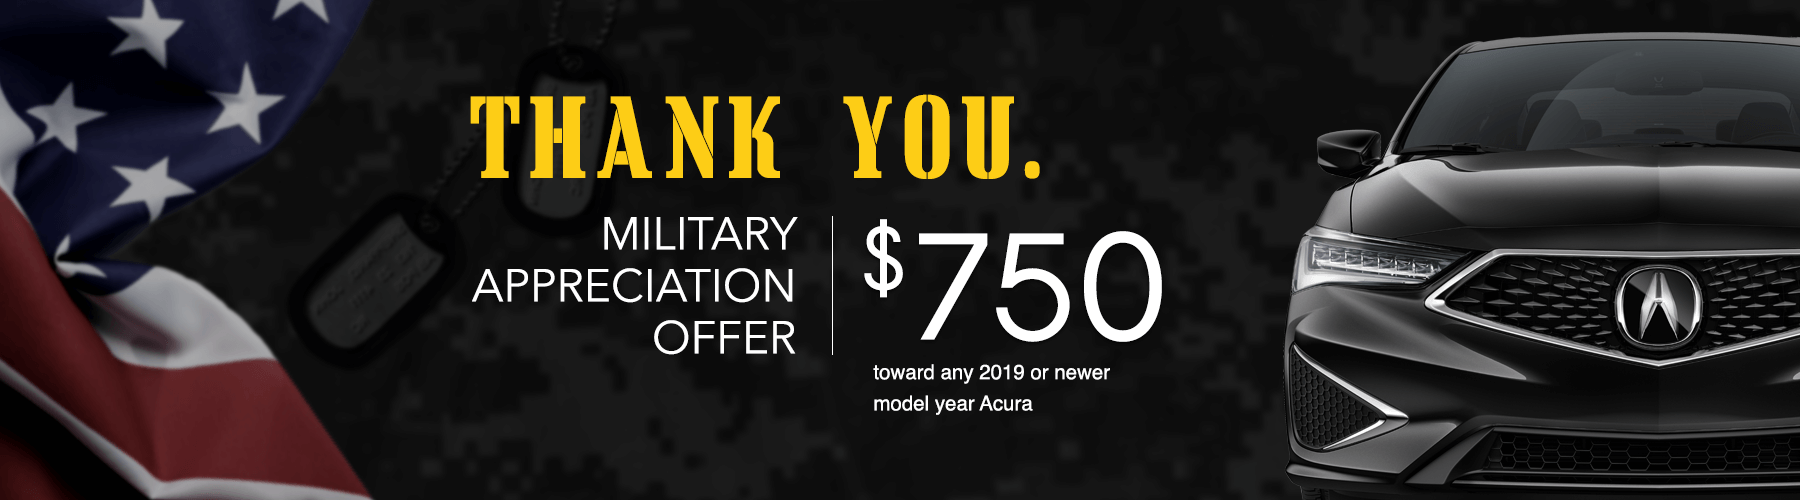 2019 Acura Military Appreciation Offer Slider